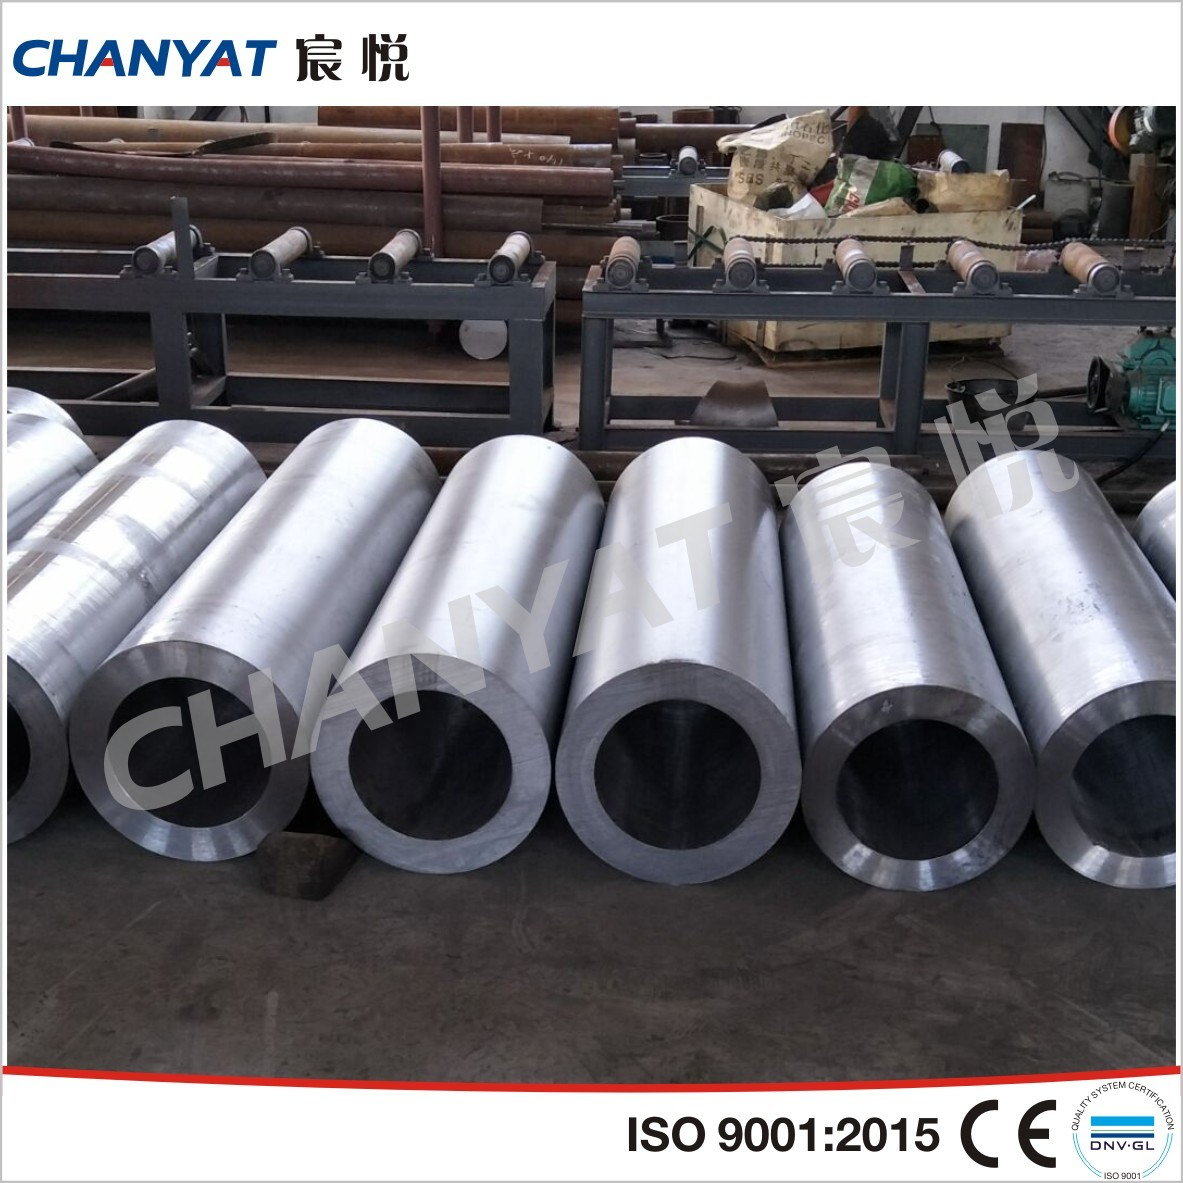 Stainless Steel Seamless Pipe as Per A312 (TP304L, TP310S, TP316L)